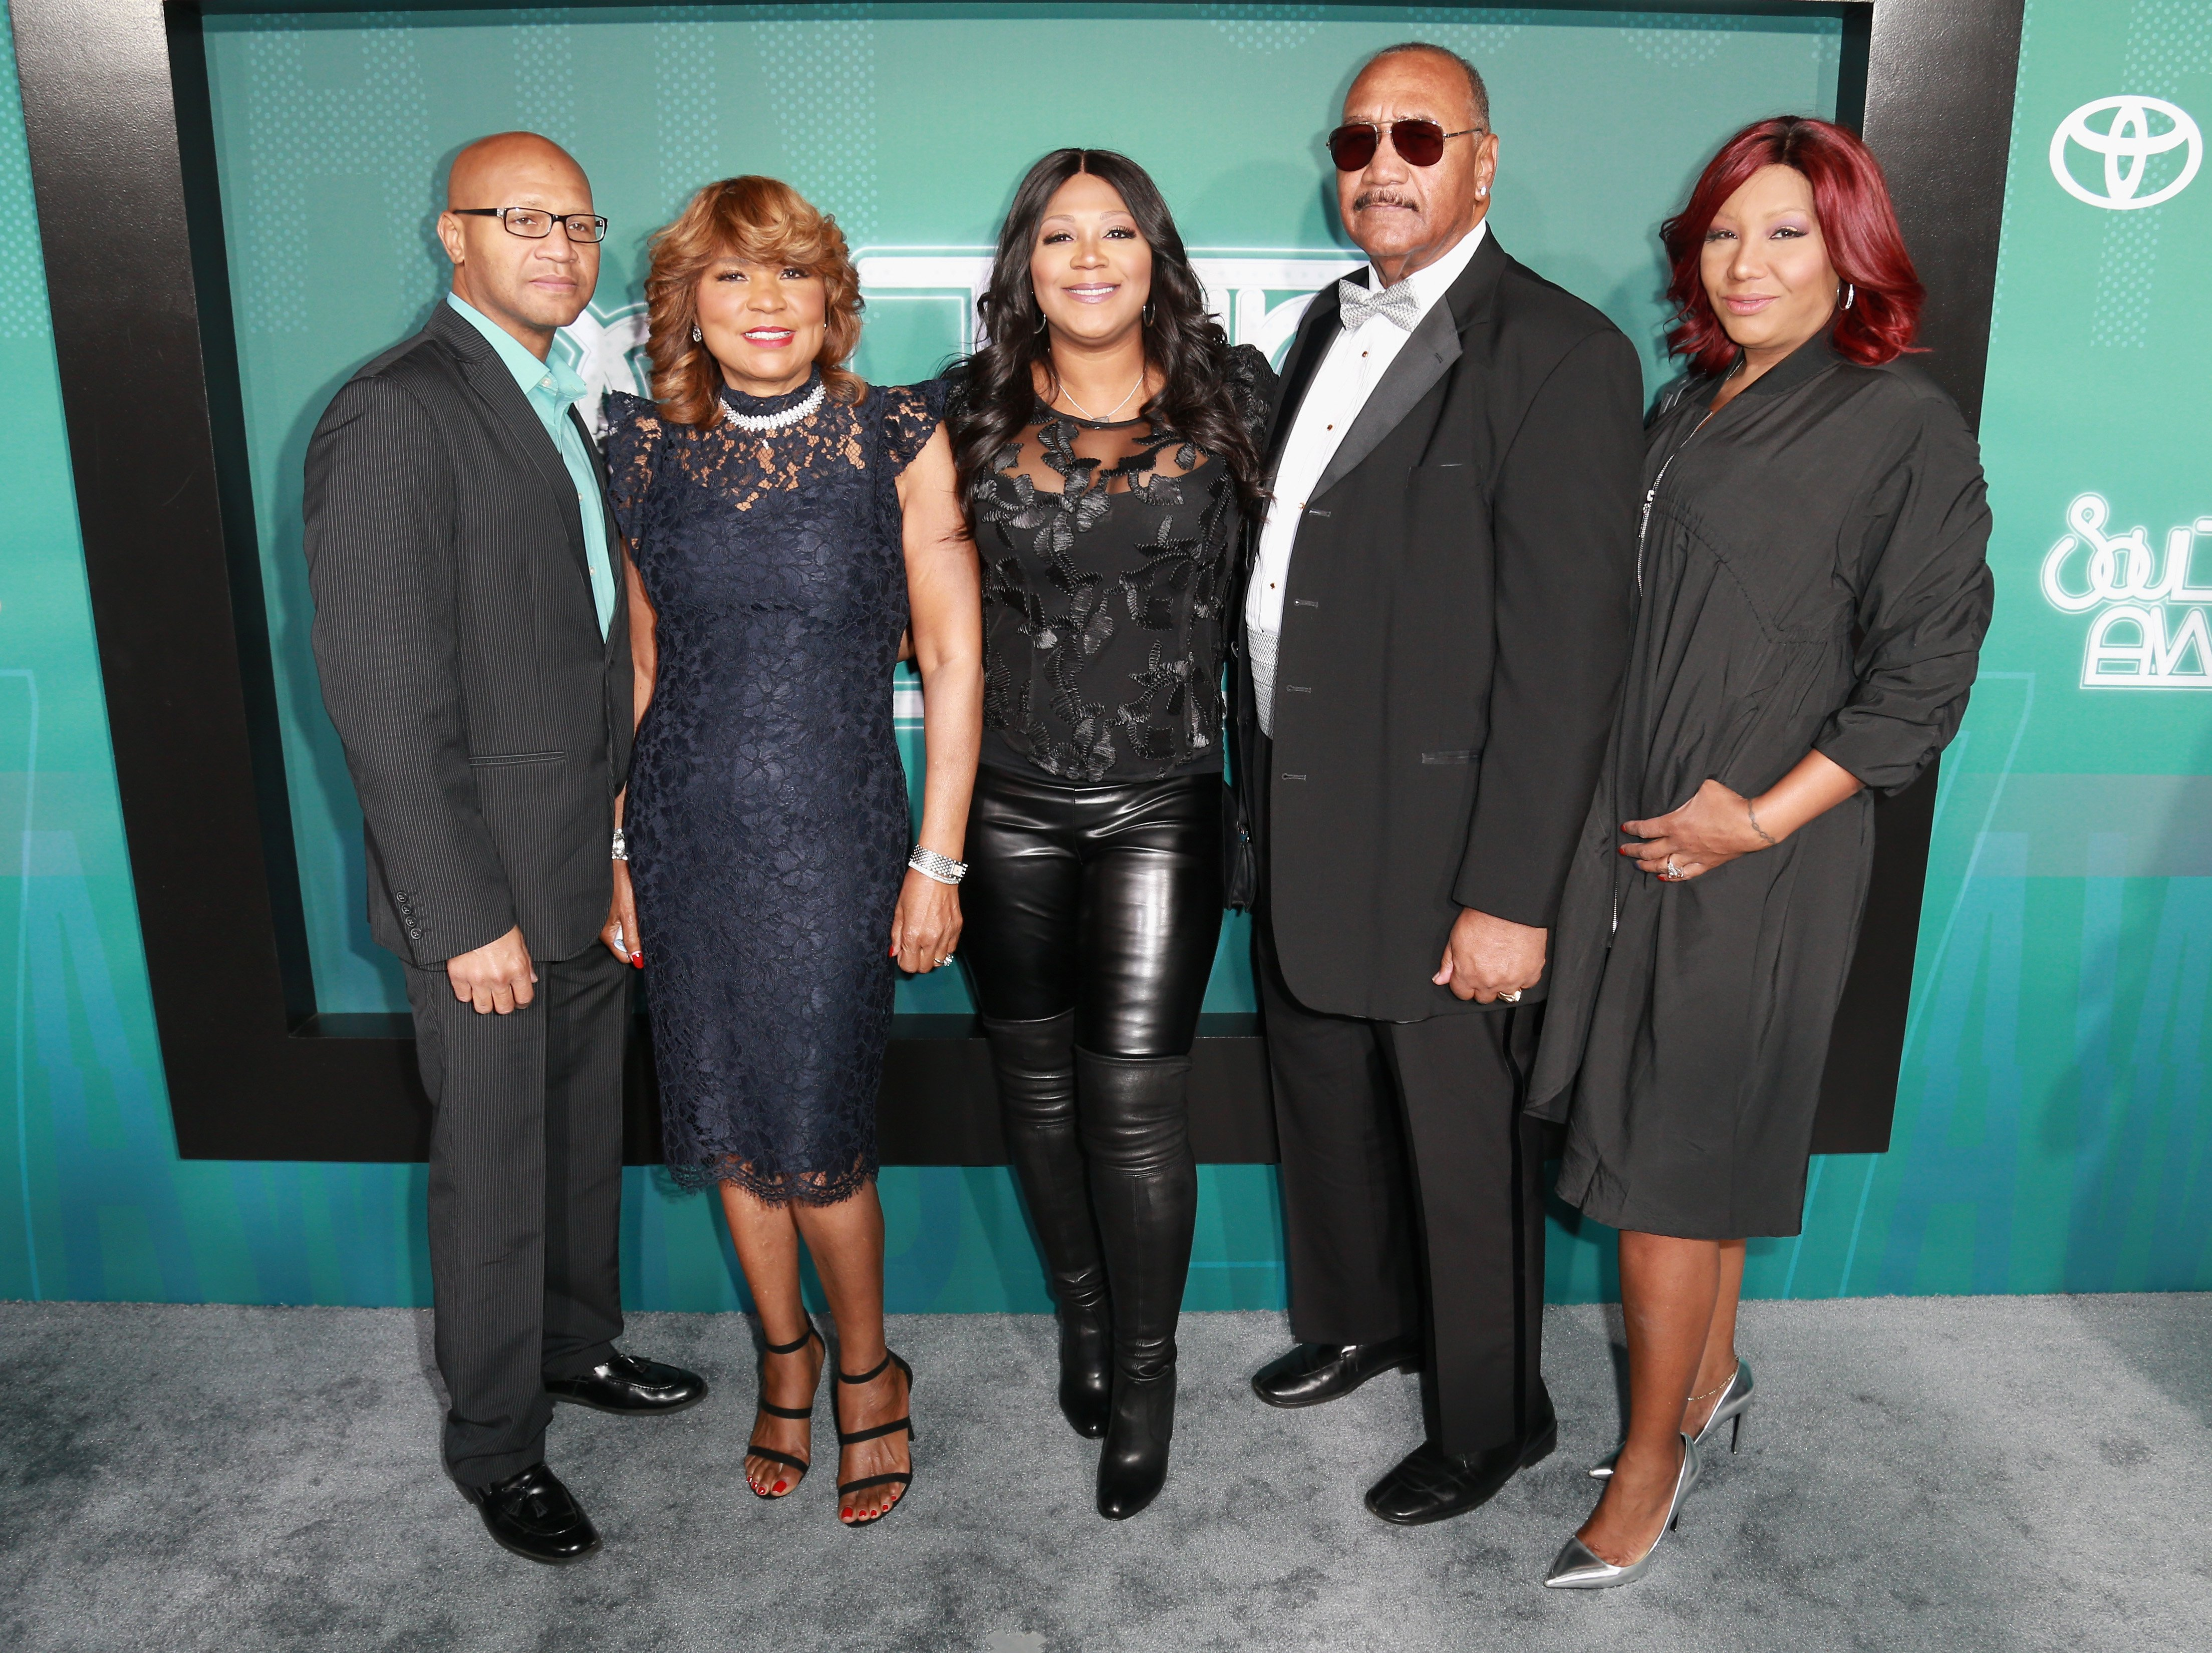 Michael Braxton Jr. with his mother, Evelyn Braxton, sisters, Trina and Traci Braxton, and father, Michael Braxton at the 2017 Soul Train Awards. | Photo: Getty Images